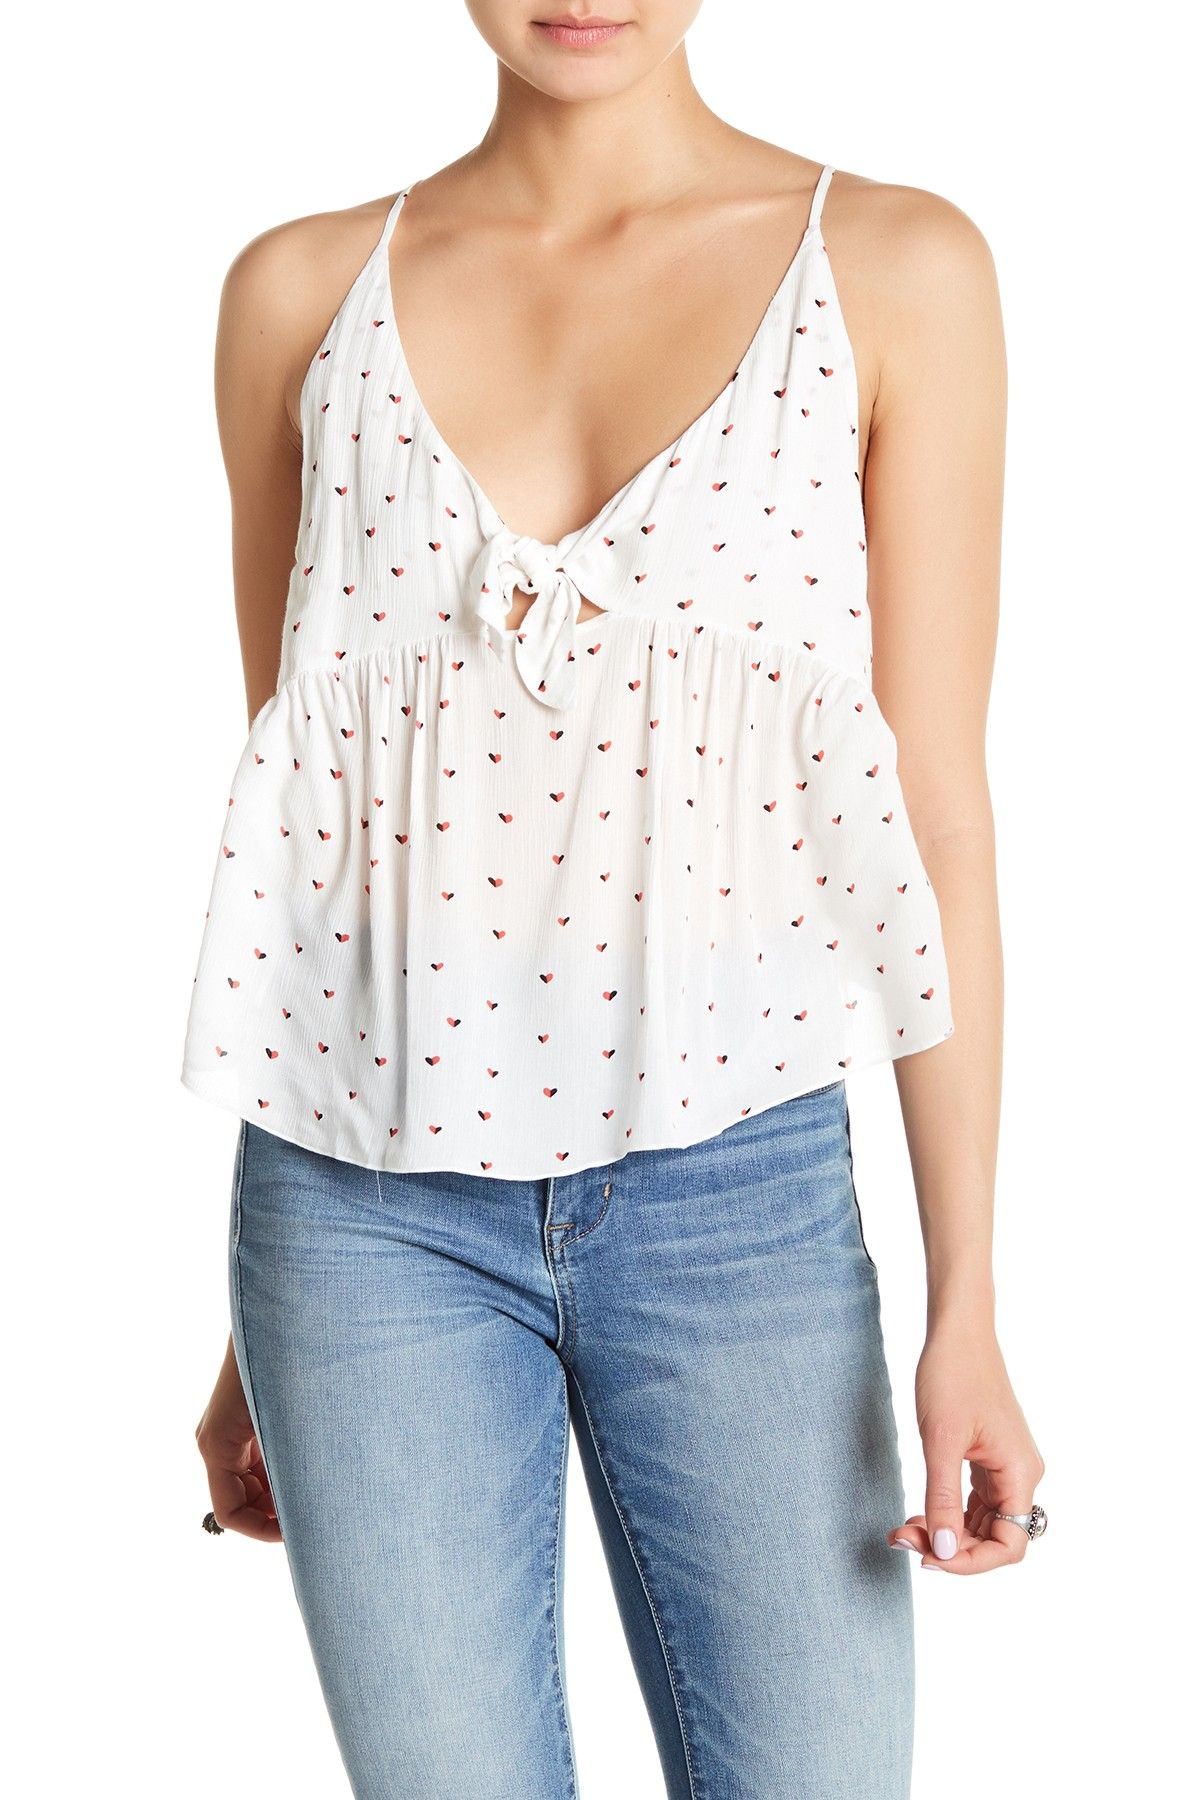 Free People Riviera Romance Cami Clothes Clothes For Women Tops